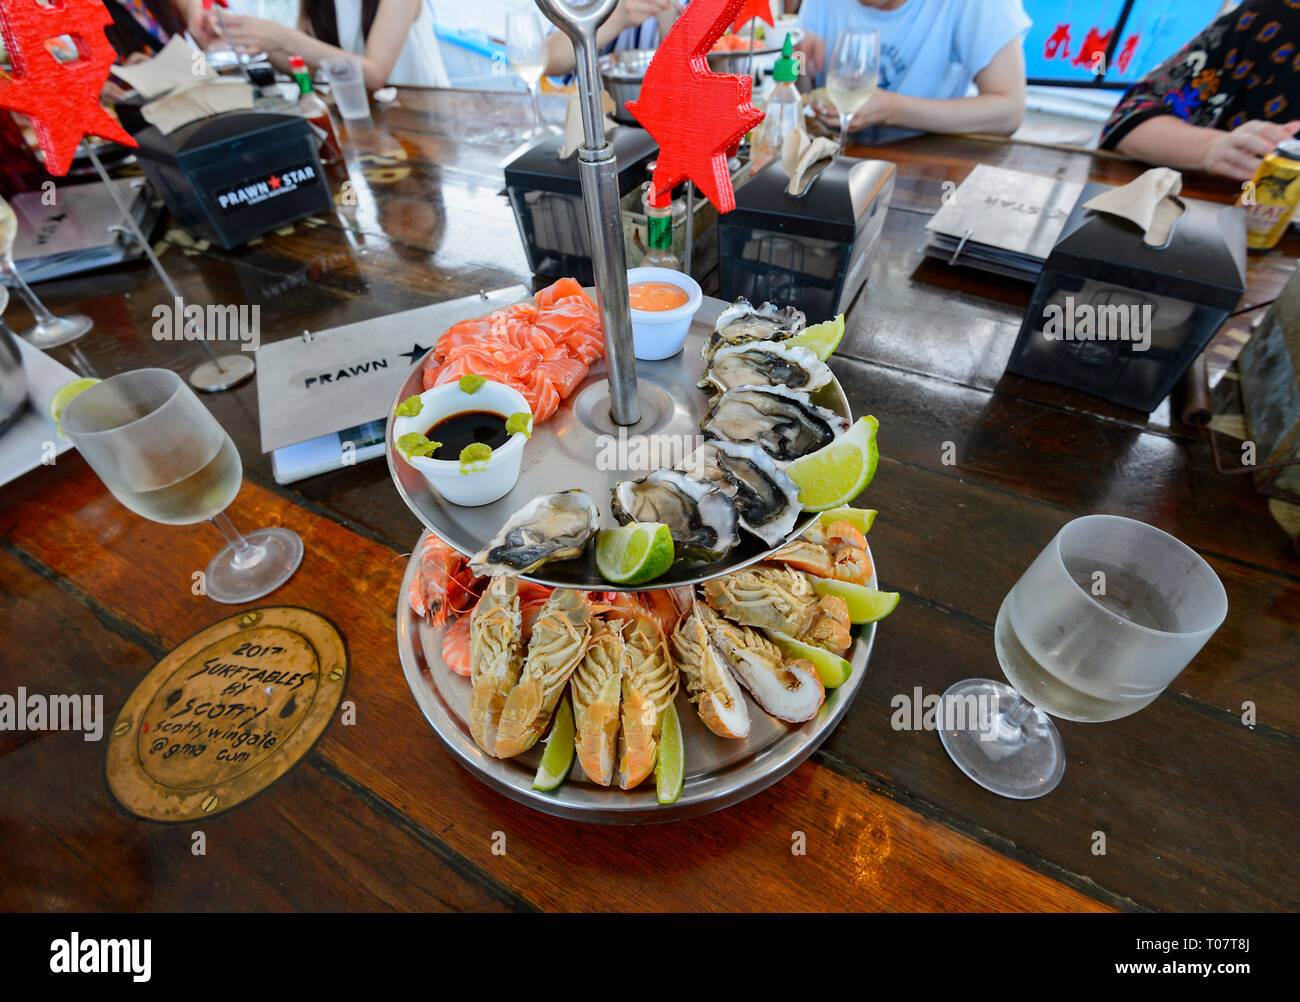 Seafood Platter Served On Board The Prawn Star A Popular Trawler Bar And Restaurant Cairns Far North Queensland Fnq Qld Australia Stock Photo Alamy